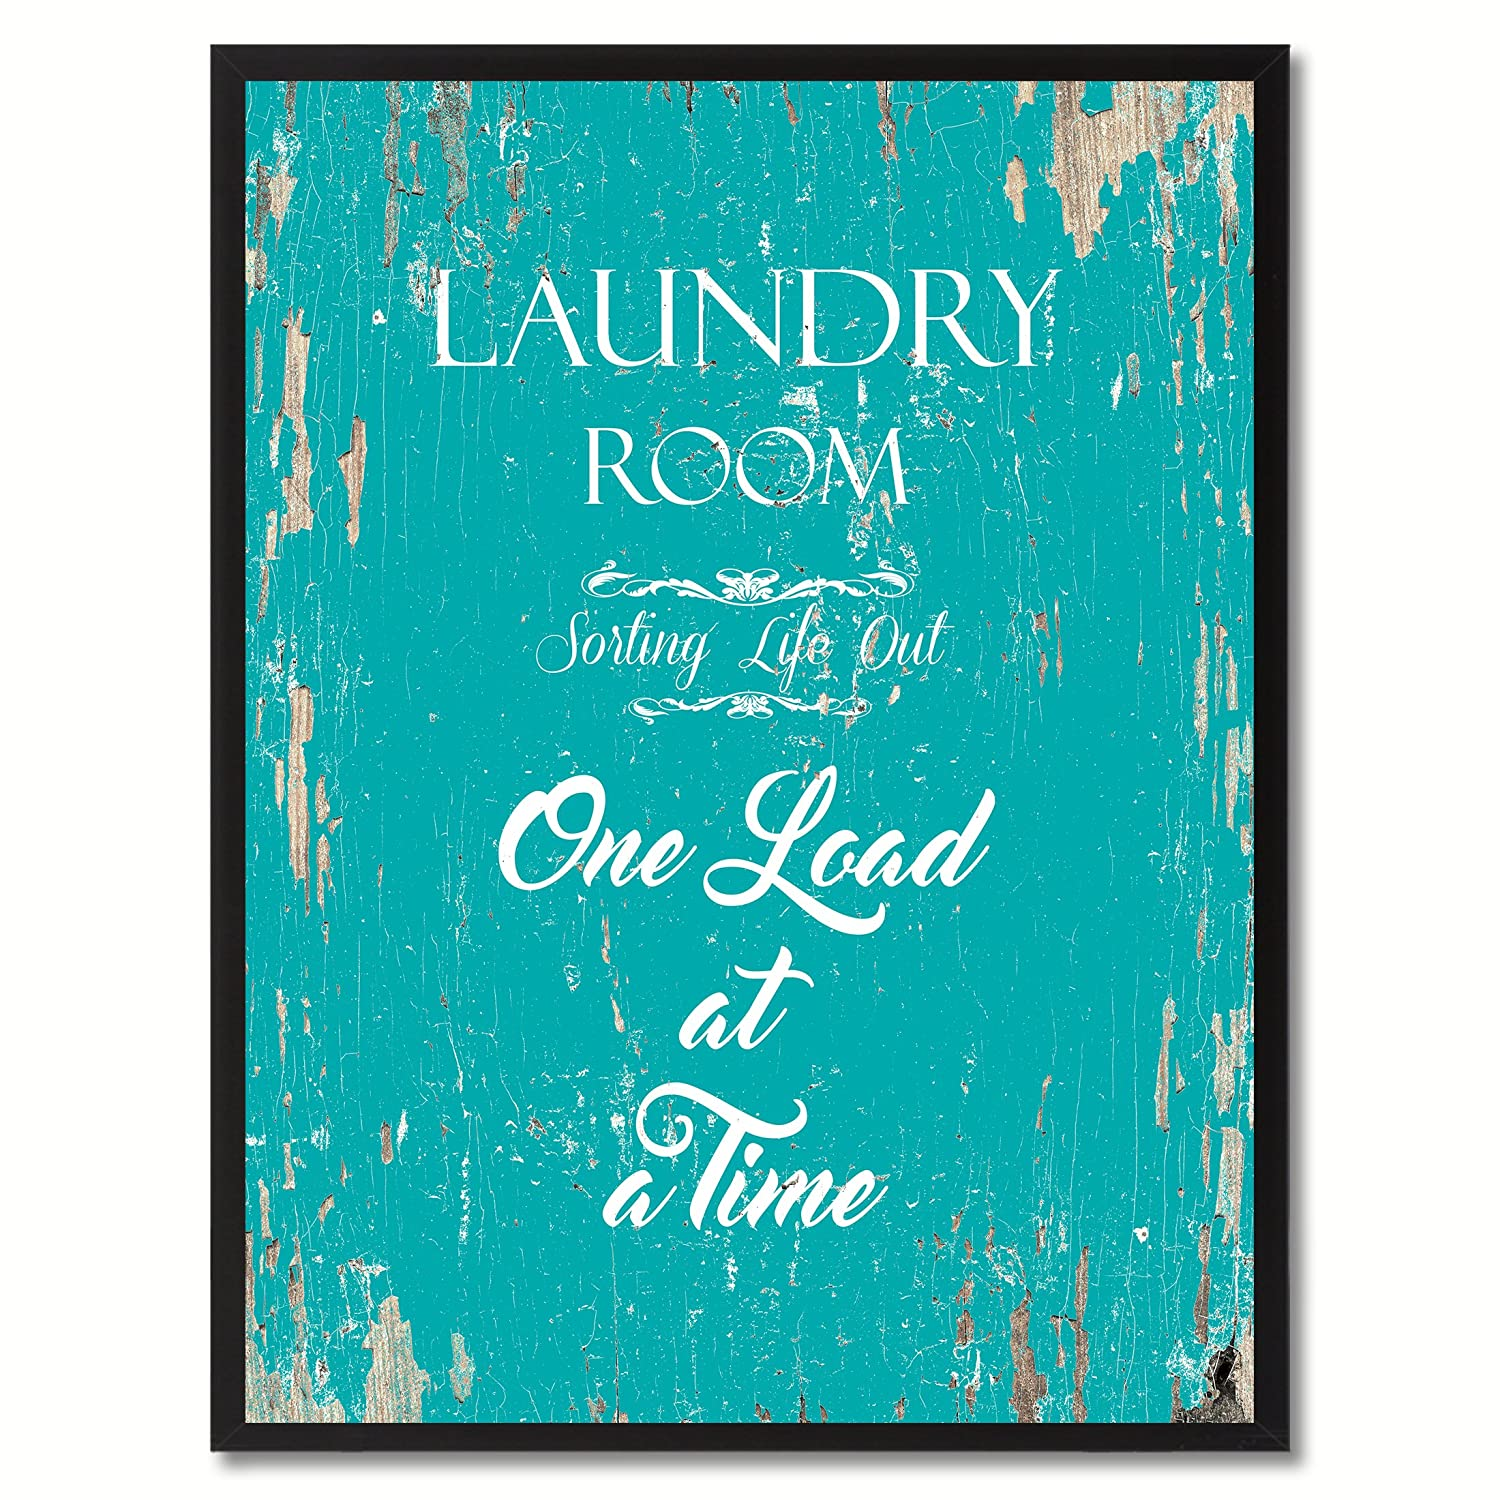 Spot Color Art Laundry Room Sorting Life Out One Load at a Time Framed Canvas Art, 7 x 9, Aqua 7 x 9 QUOTEBEACH085-111253AQ79B